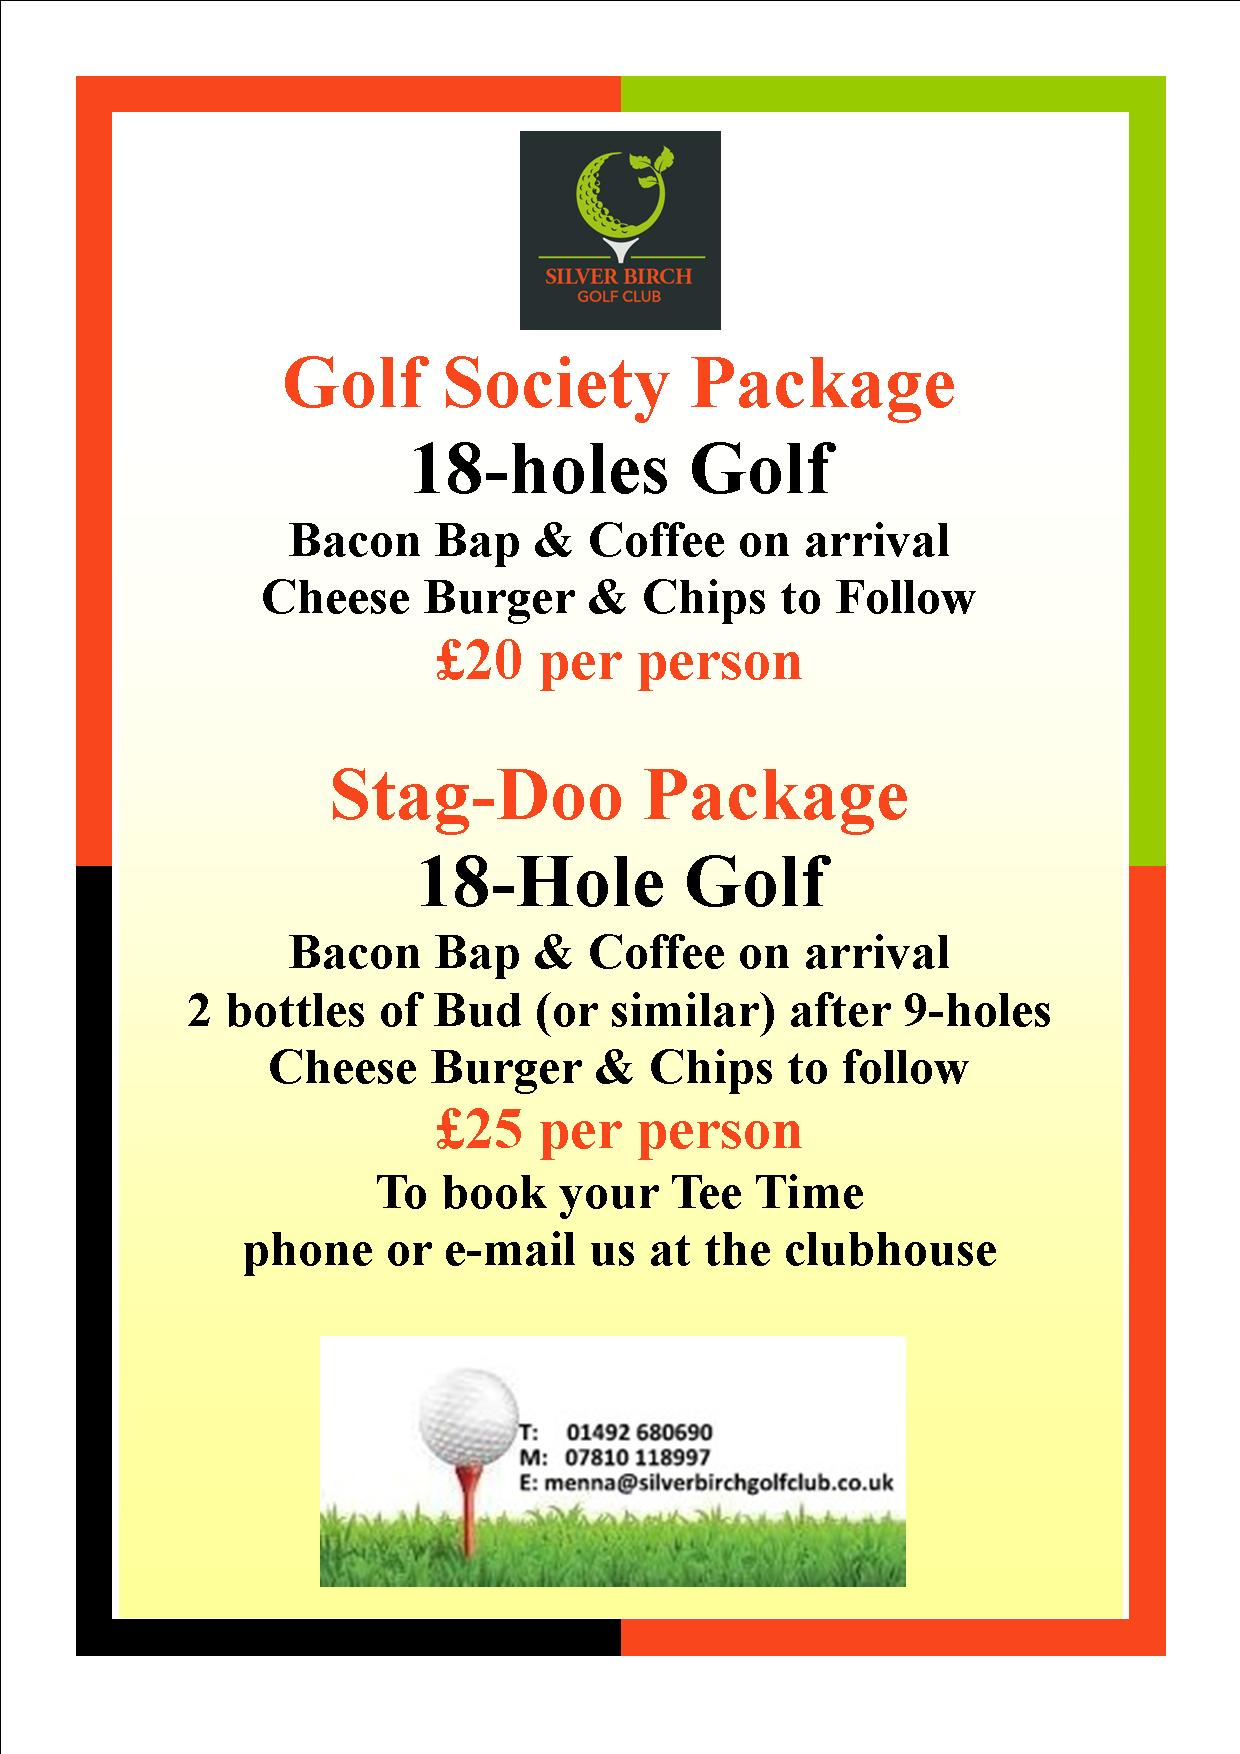 SBGC Golf Society Package 2018